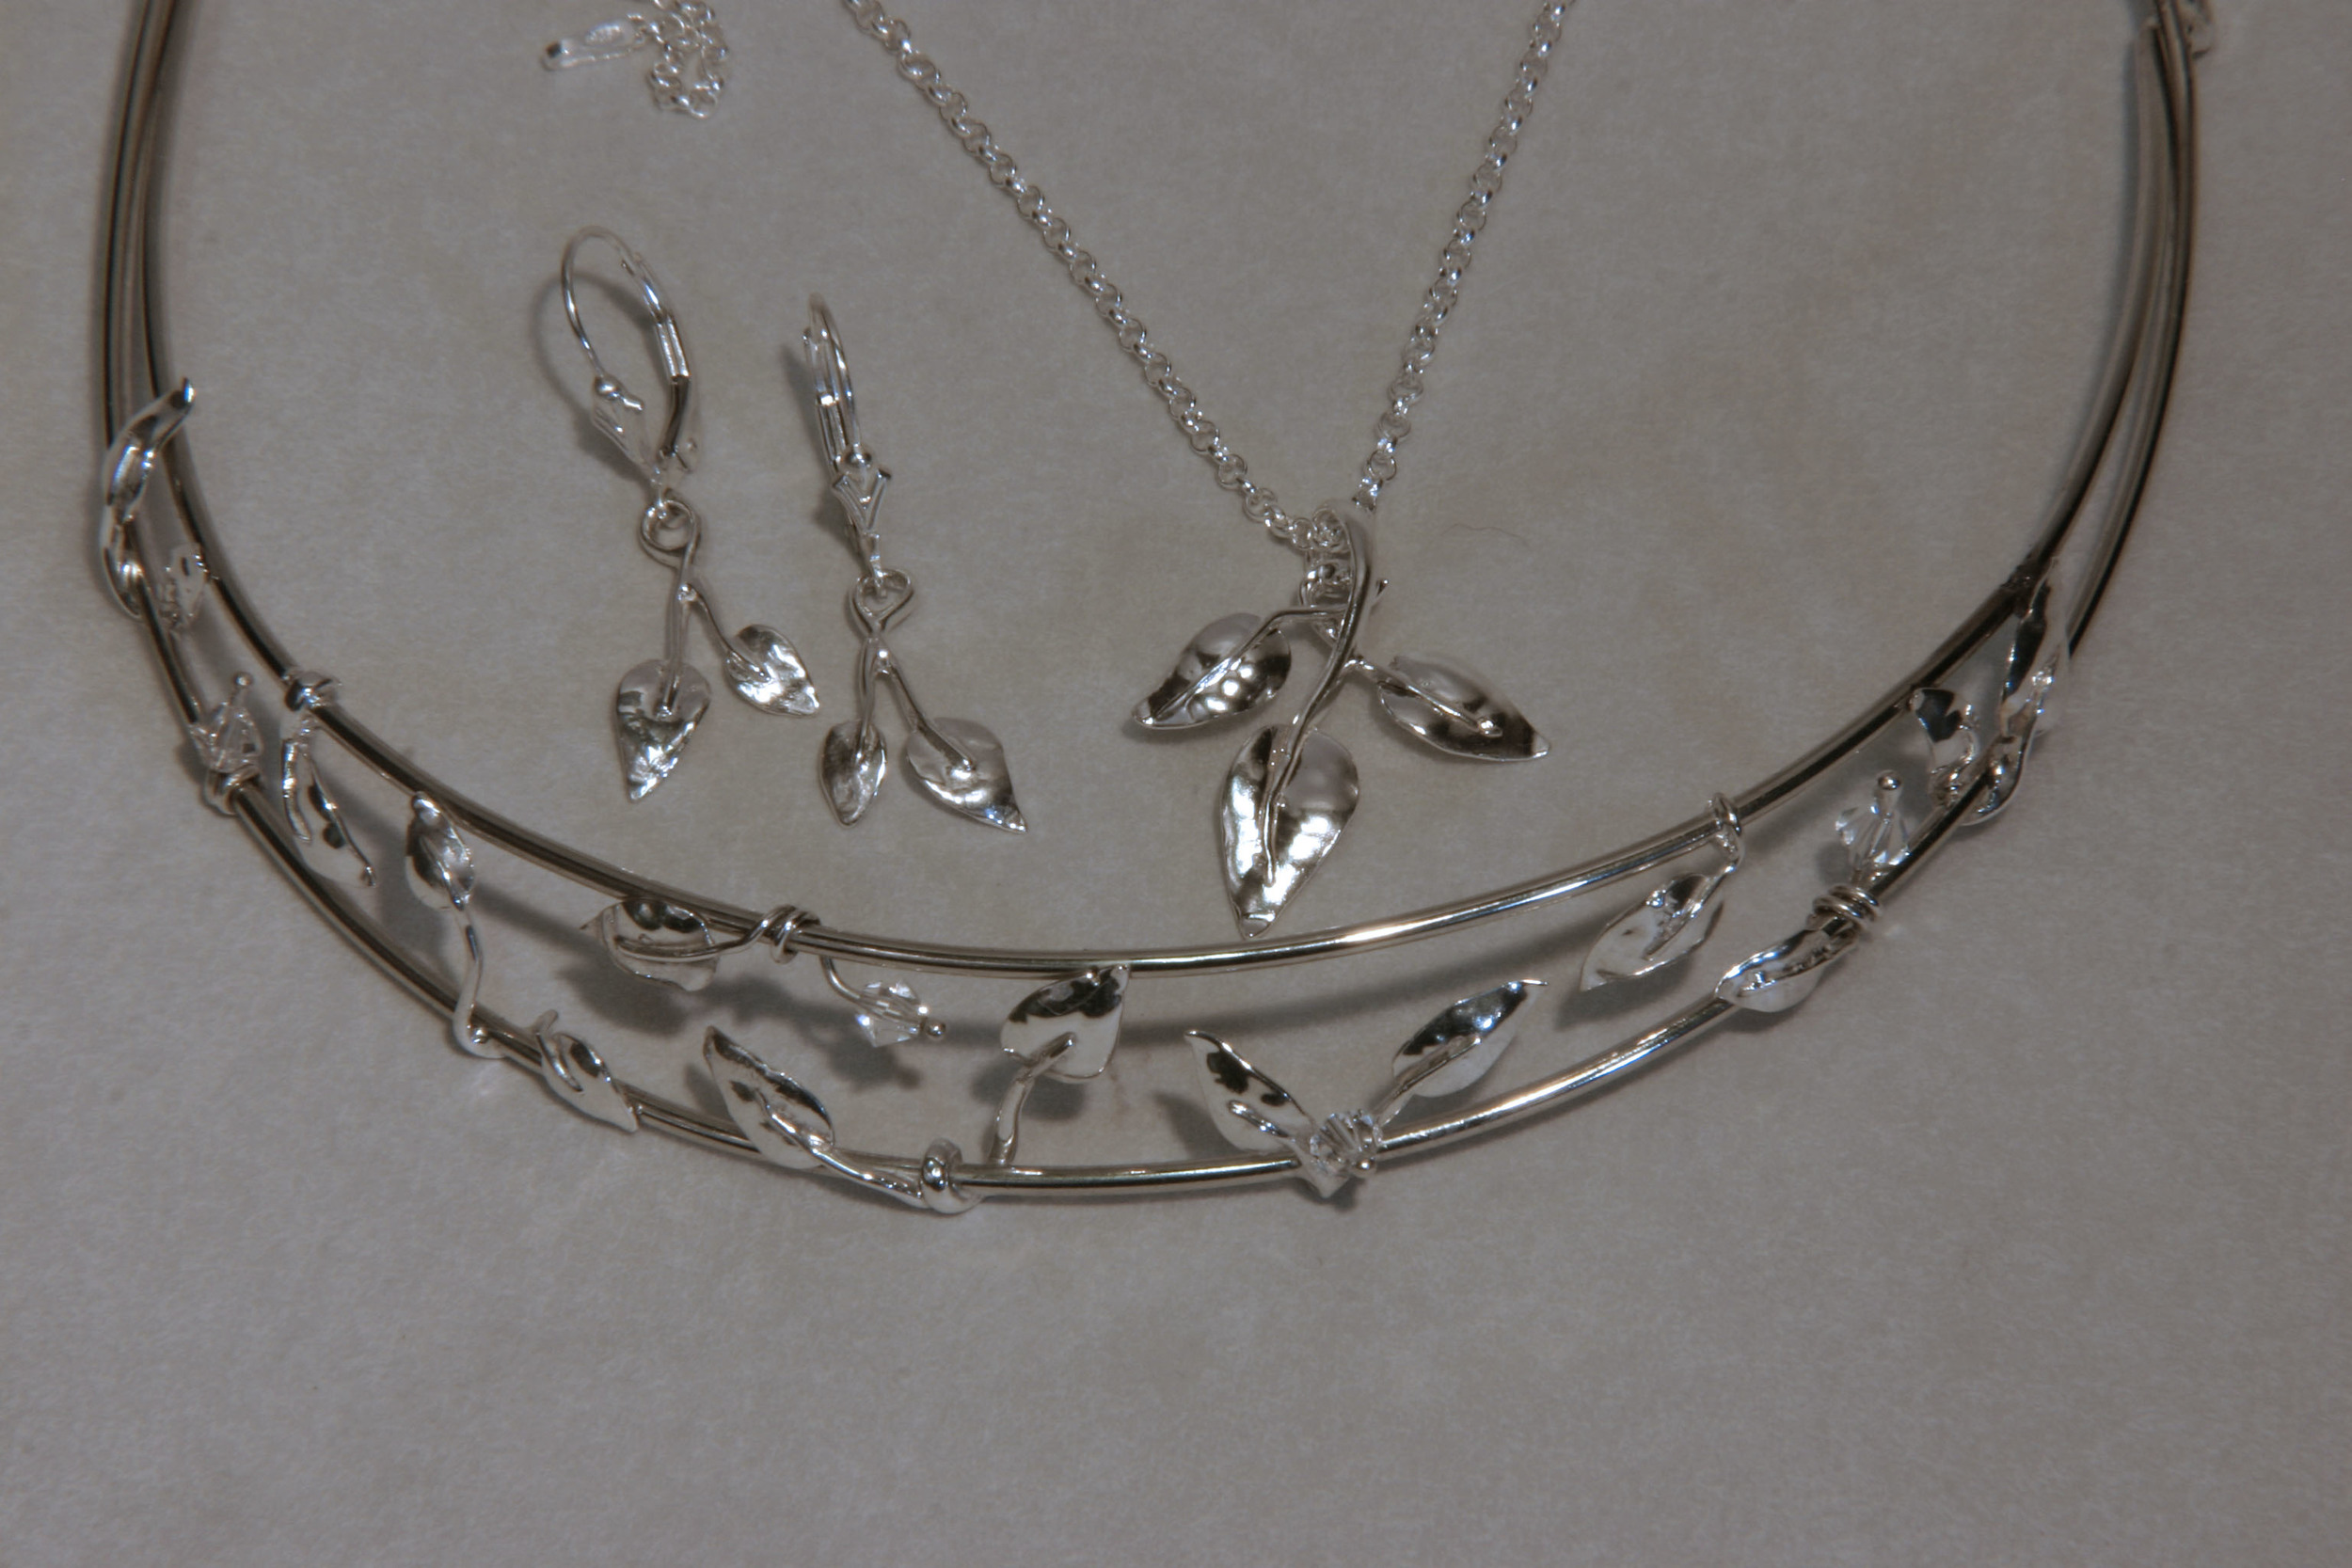 Sterling silver leaf motif bridal set of  a tiara, earrings, & pendant.